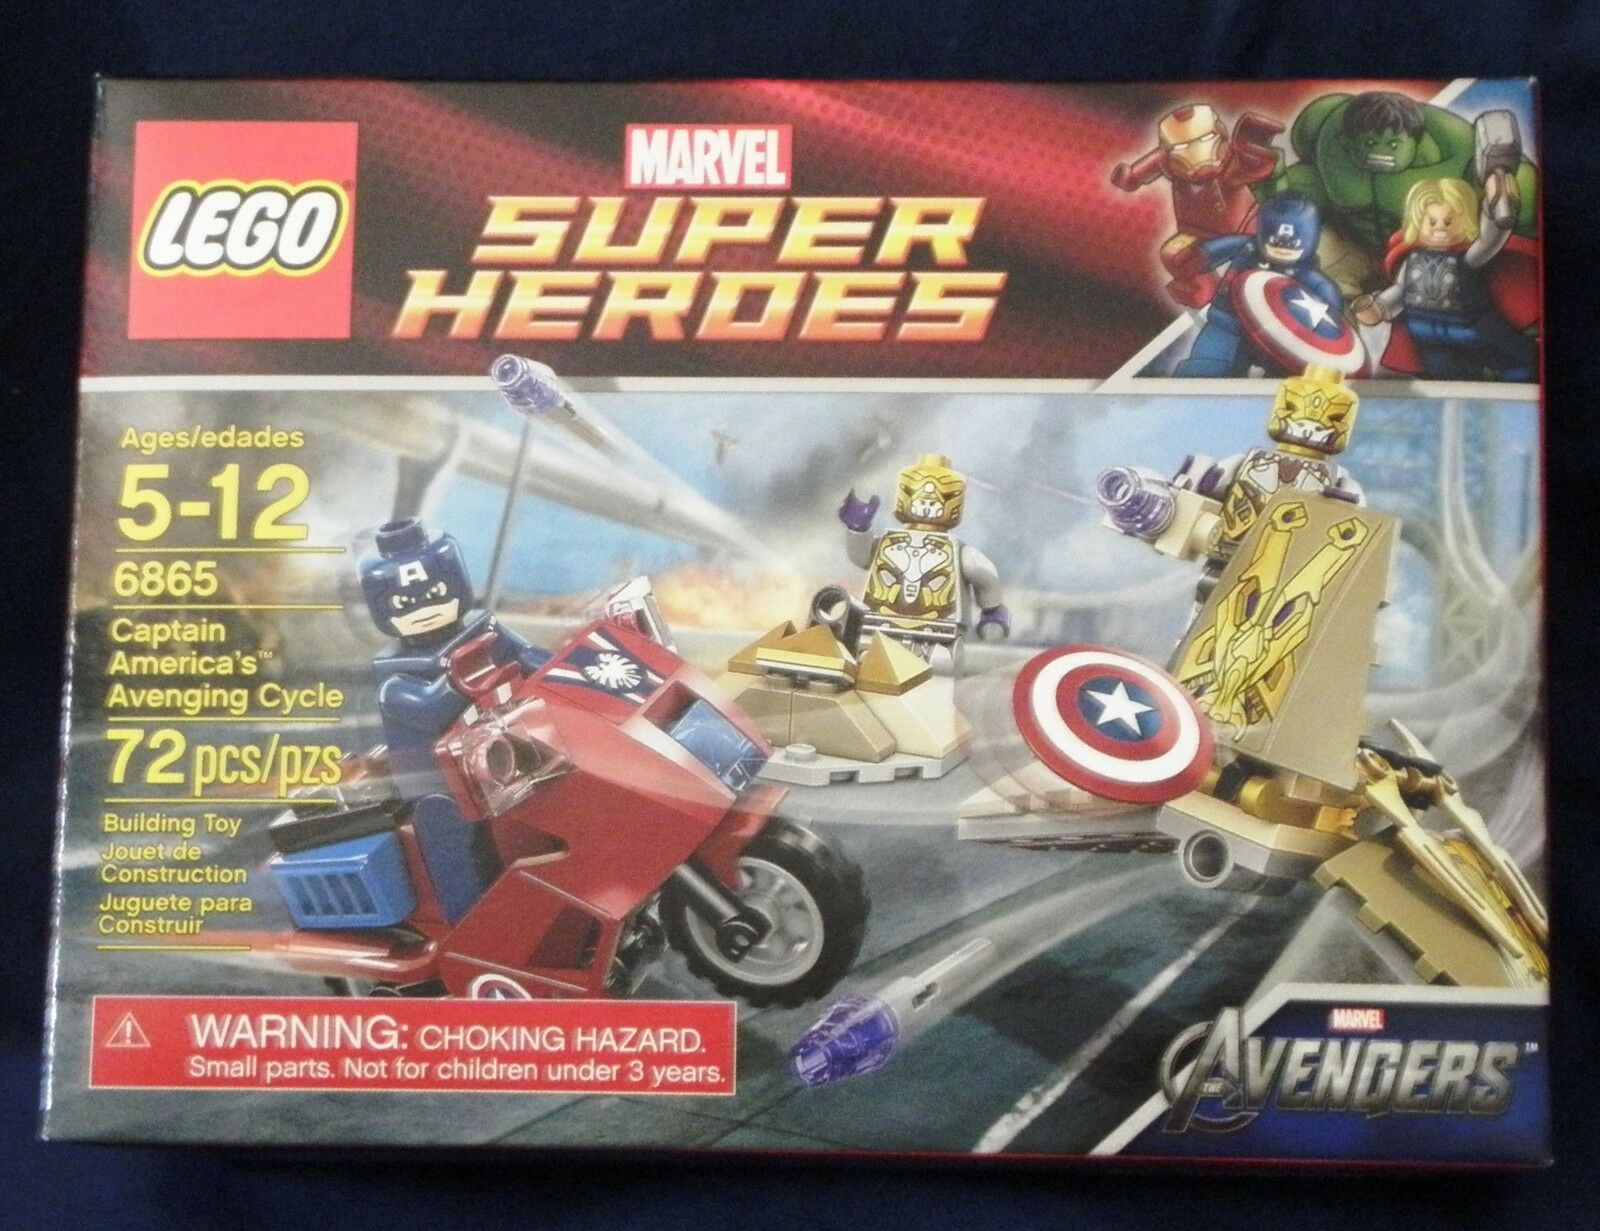 Lego Marvel Super Heroes Captain America's Avenging Cycle  6865 new in box